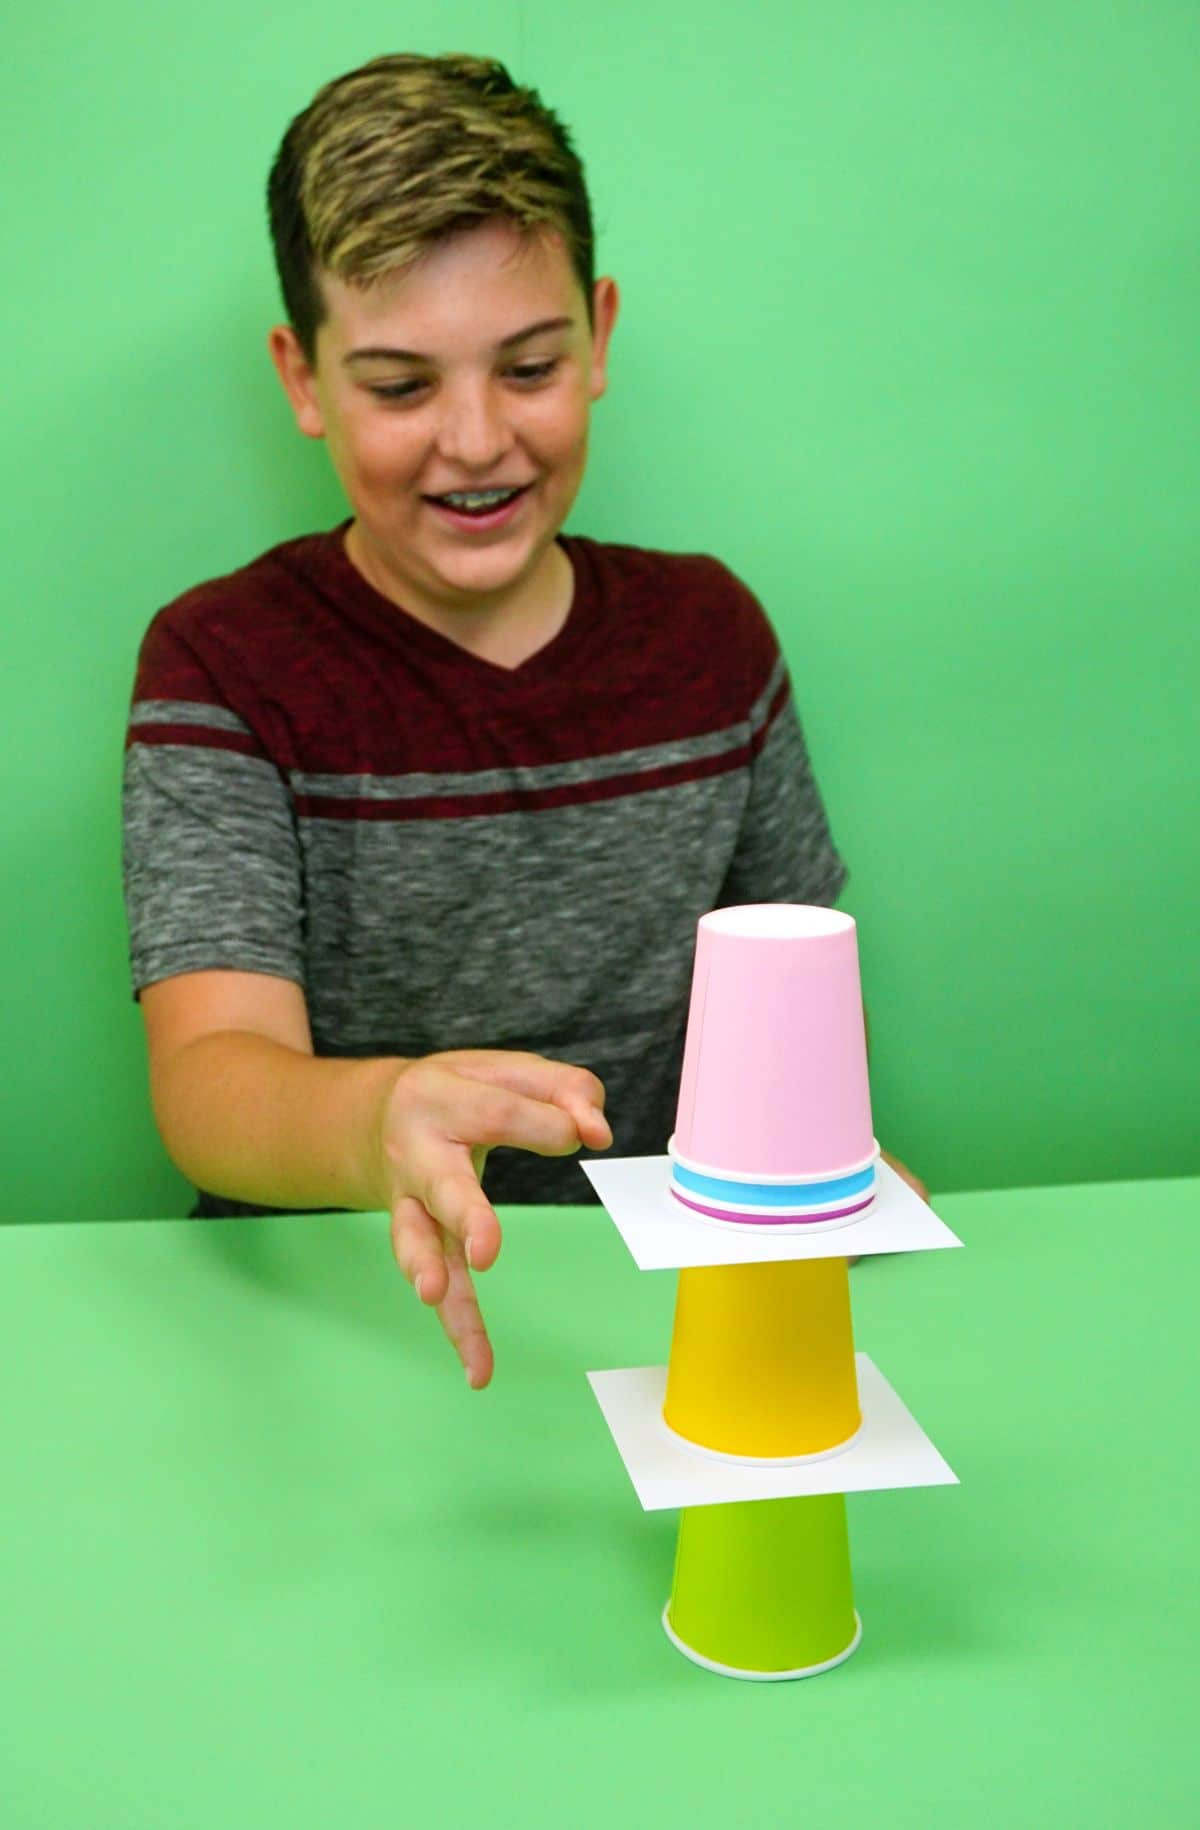 on a green background with a green table a boy sits down. He s reaching toward a tower of 3 paper cups with white squares of cardboard inbetween them